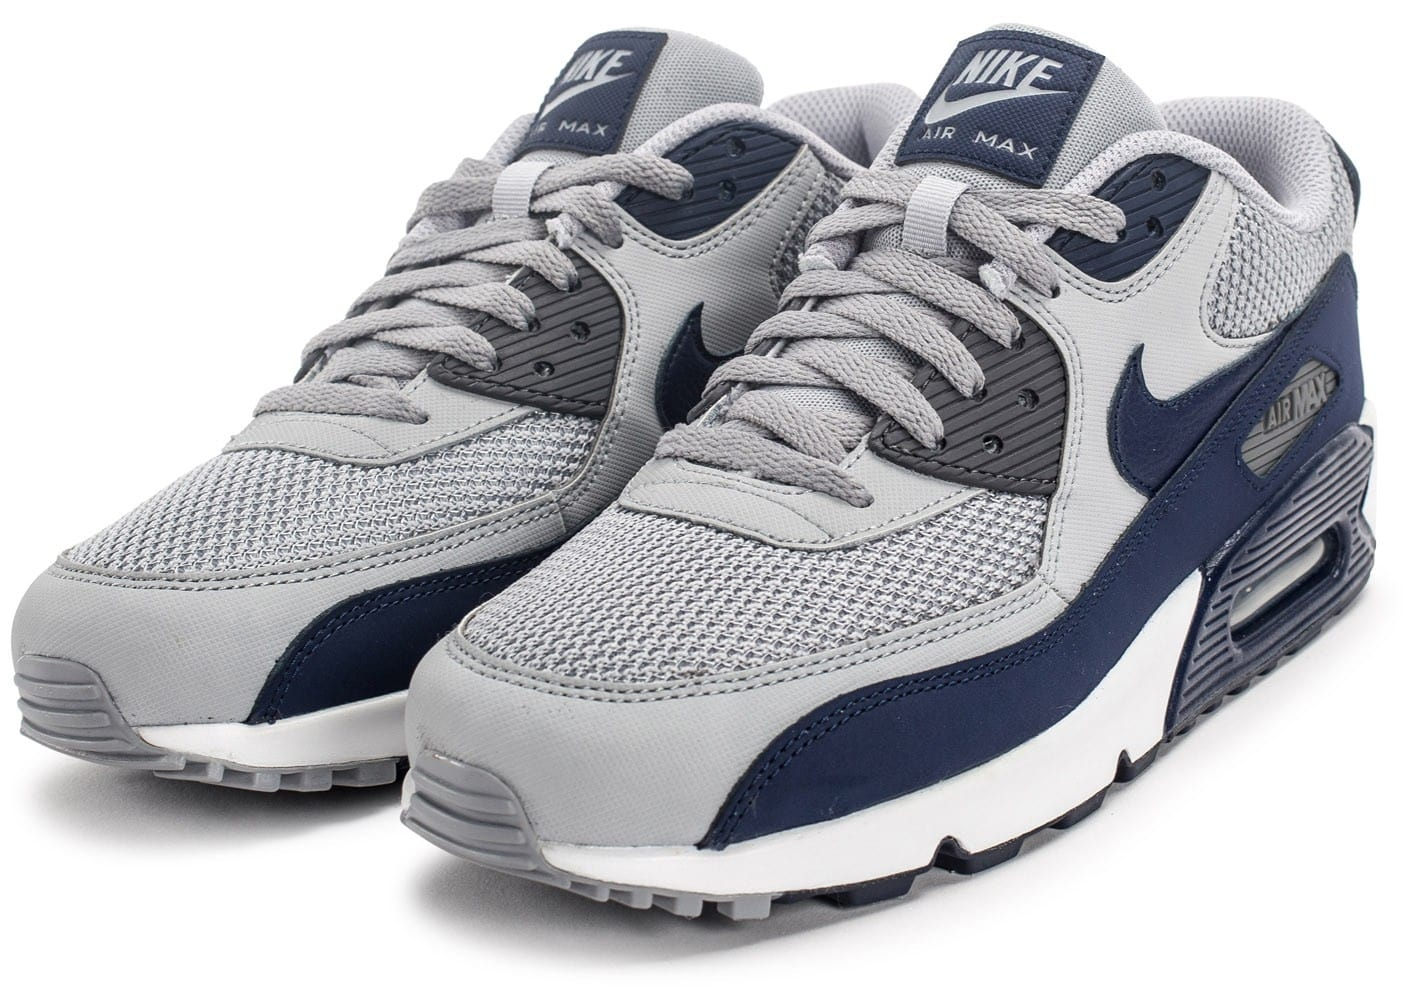 new product 5cff2 f943f ... Chaussures Nike Air Max 90 Essential grise et bleue vue intérieure ...